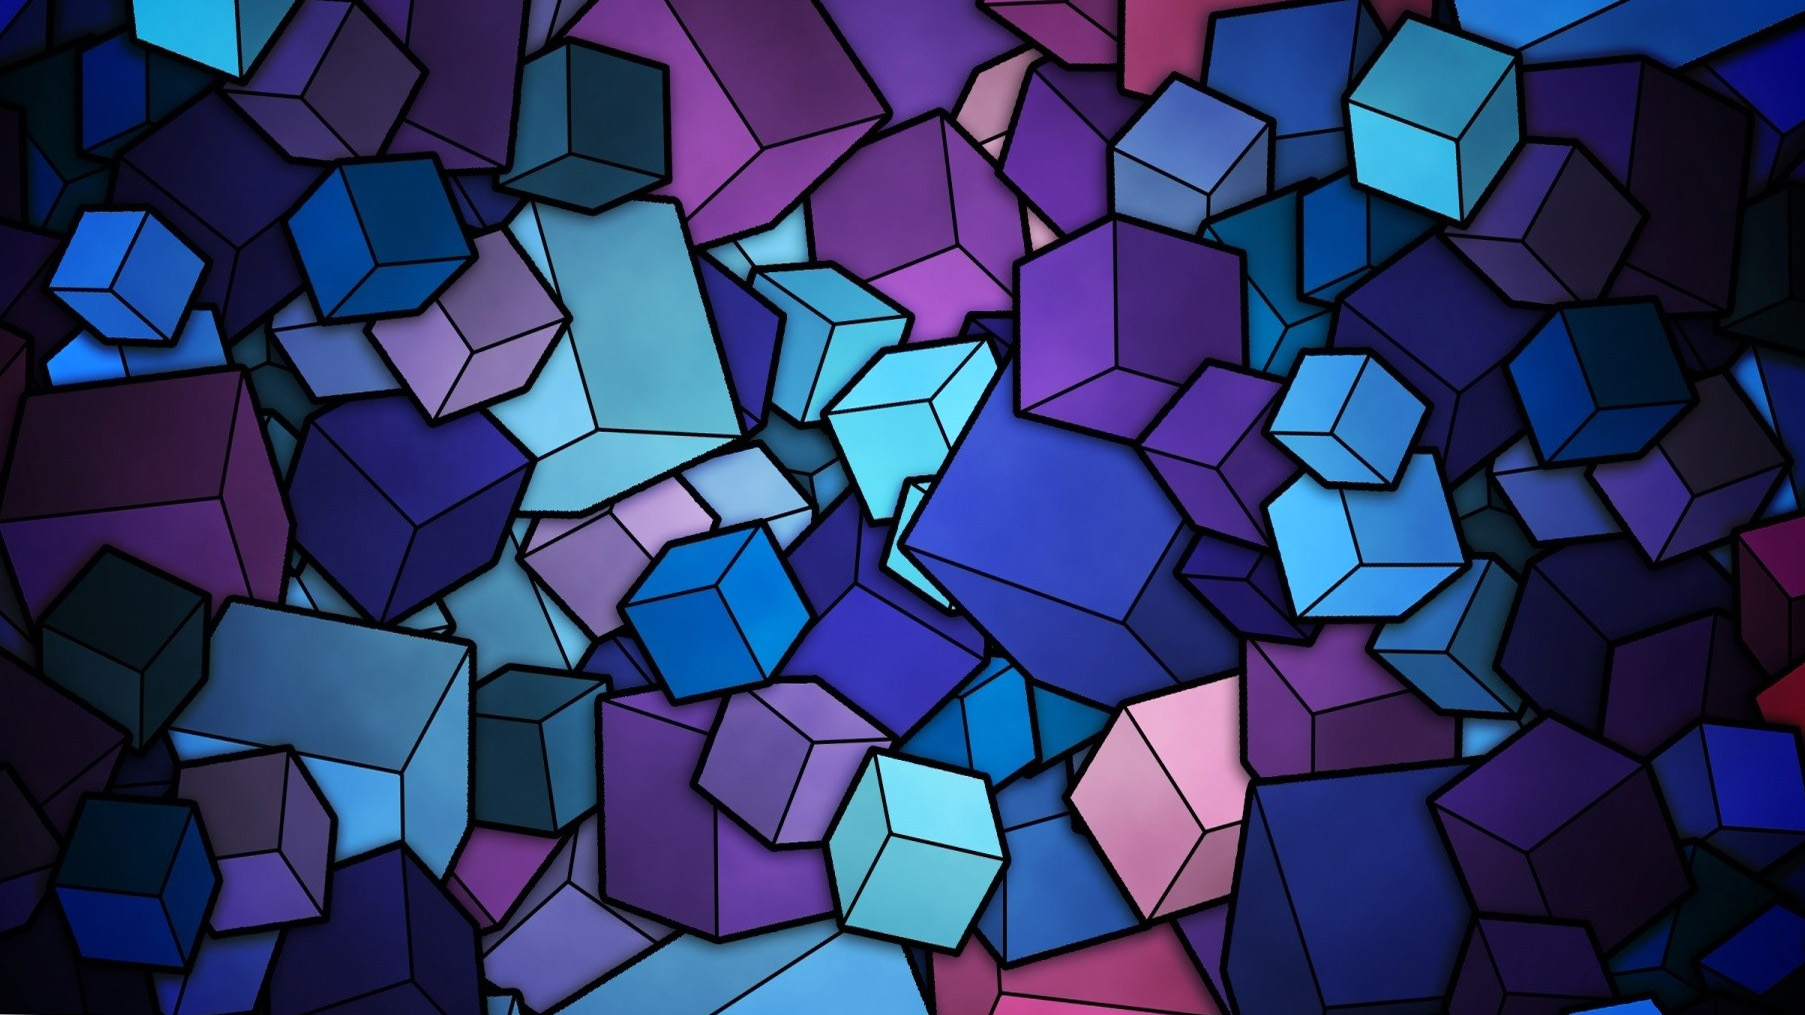 In Gallery: Abstract Art Wallpaper, 32 Abstract Art HD Wallpapers